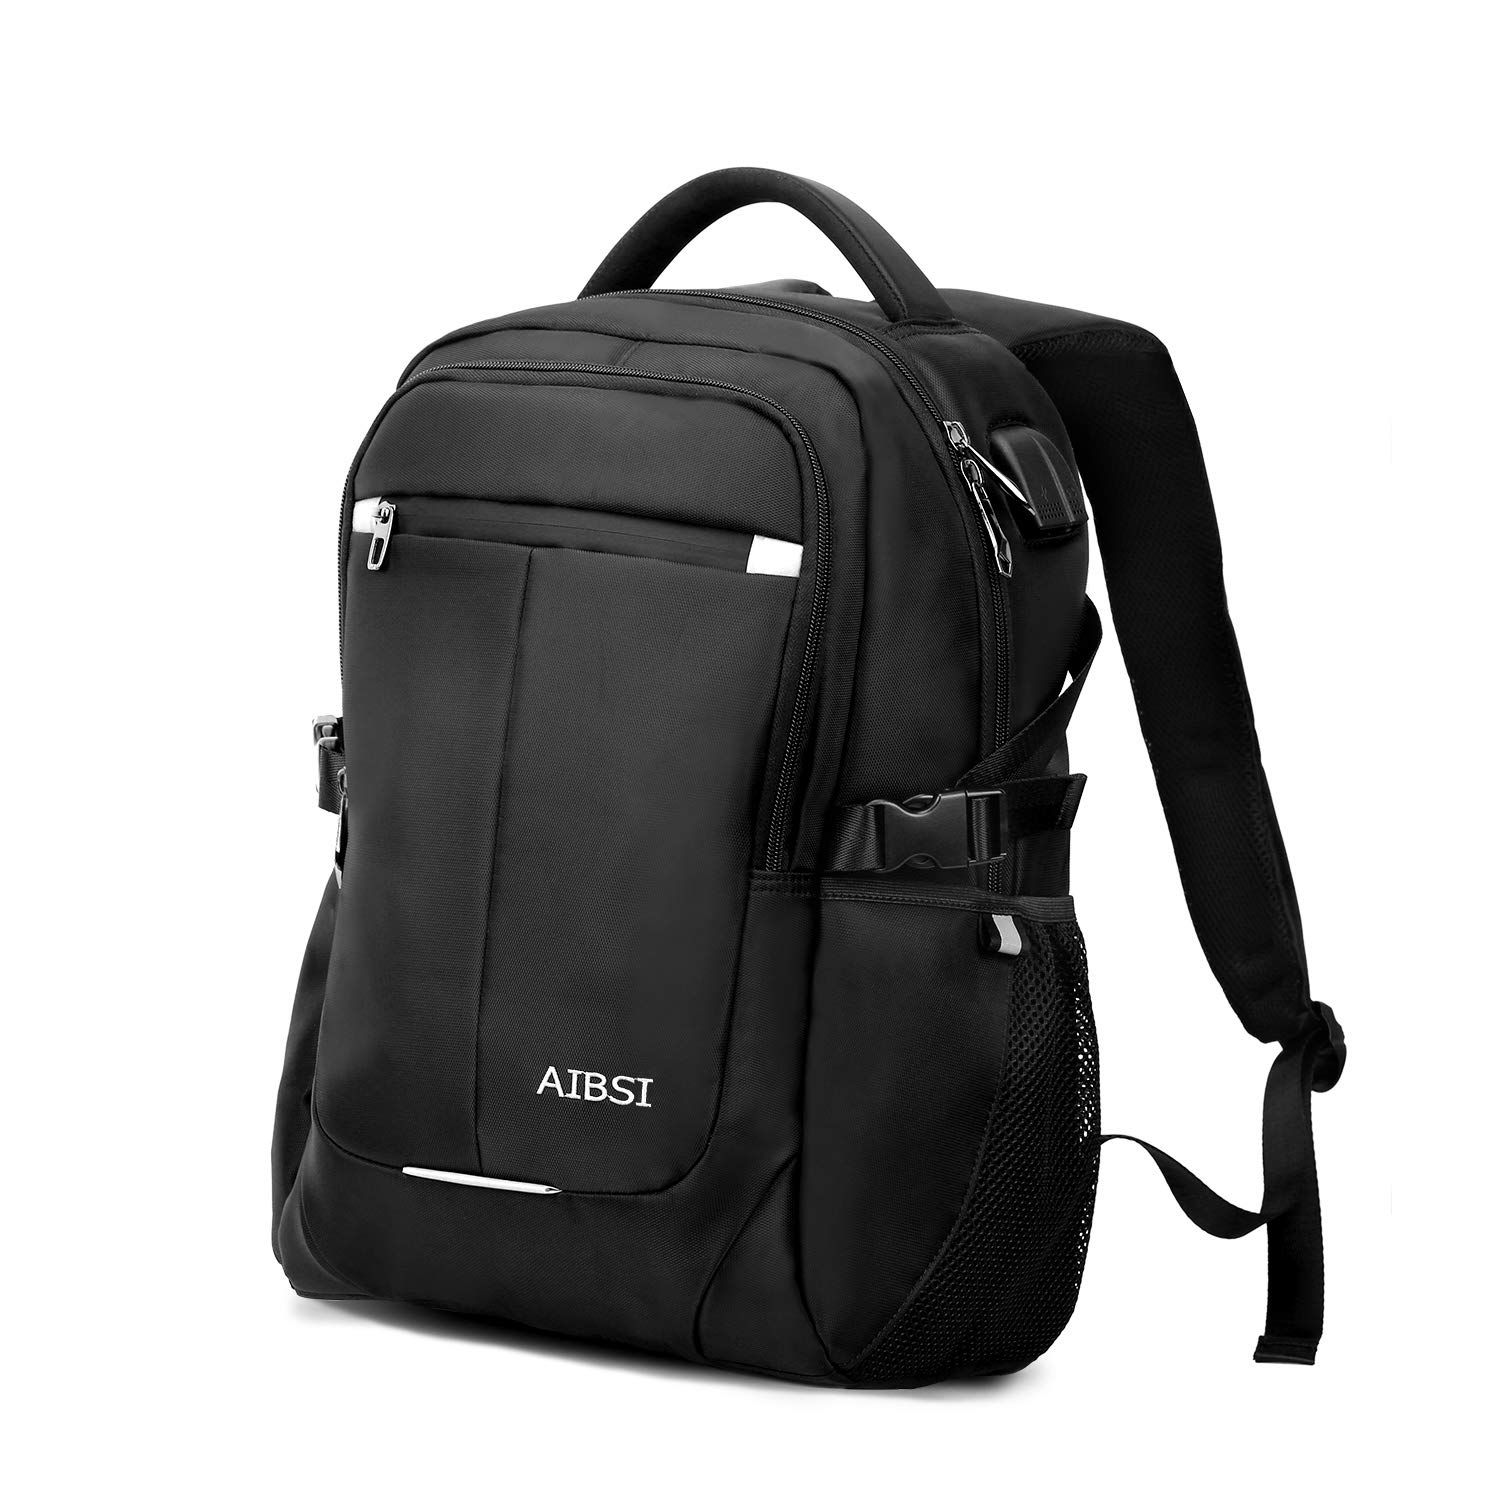 Laptop Backpack, AIBSI Anti Theft Business Backpack for Women & Men, Slim Durable Travel Computer Bag, Waterproof College School Bookbag with USB Charging Port Fits 15.6 Inch Laptop Notebook - Black